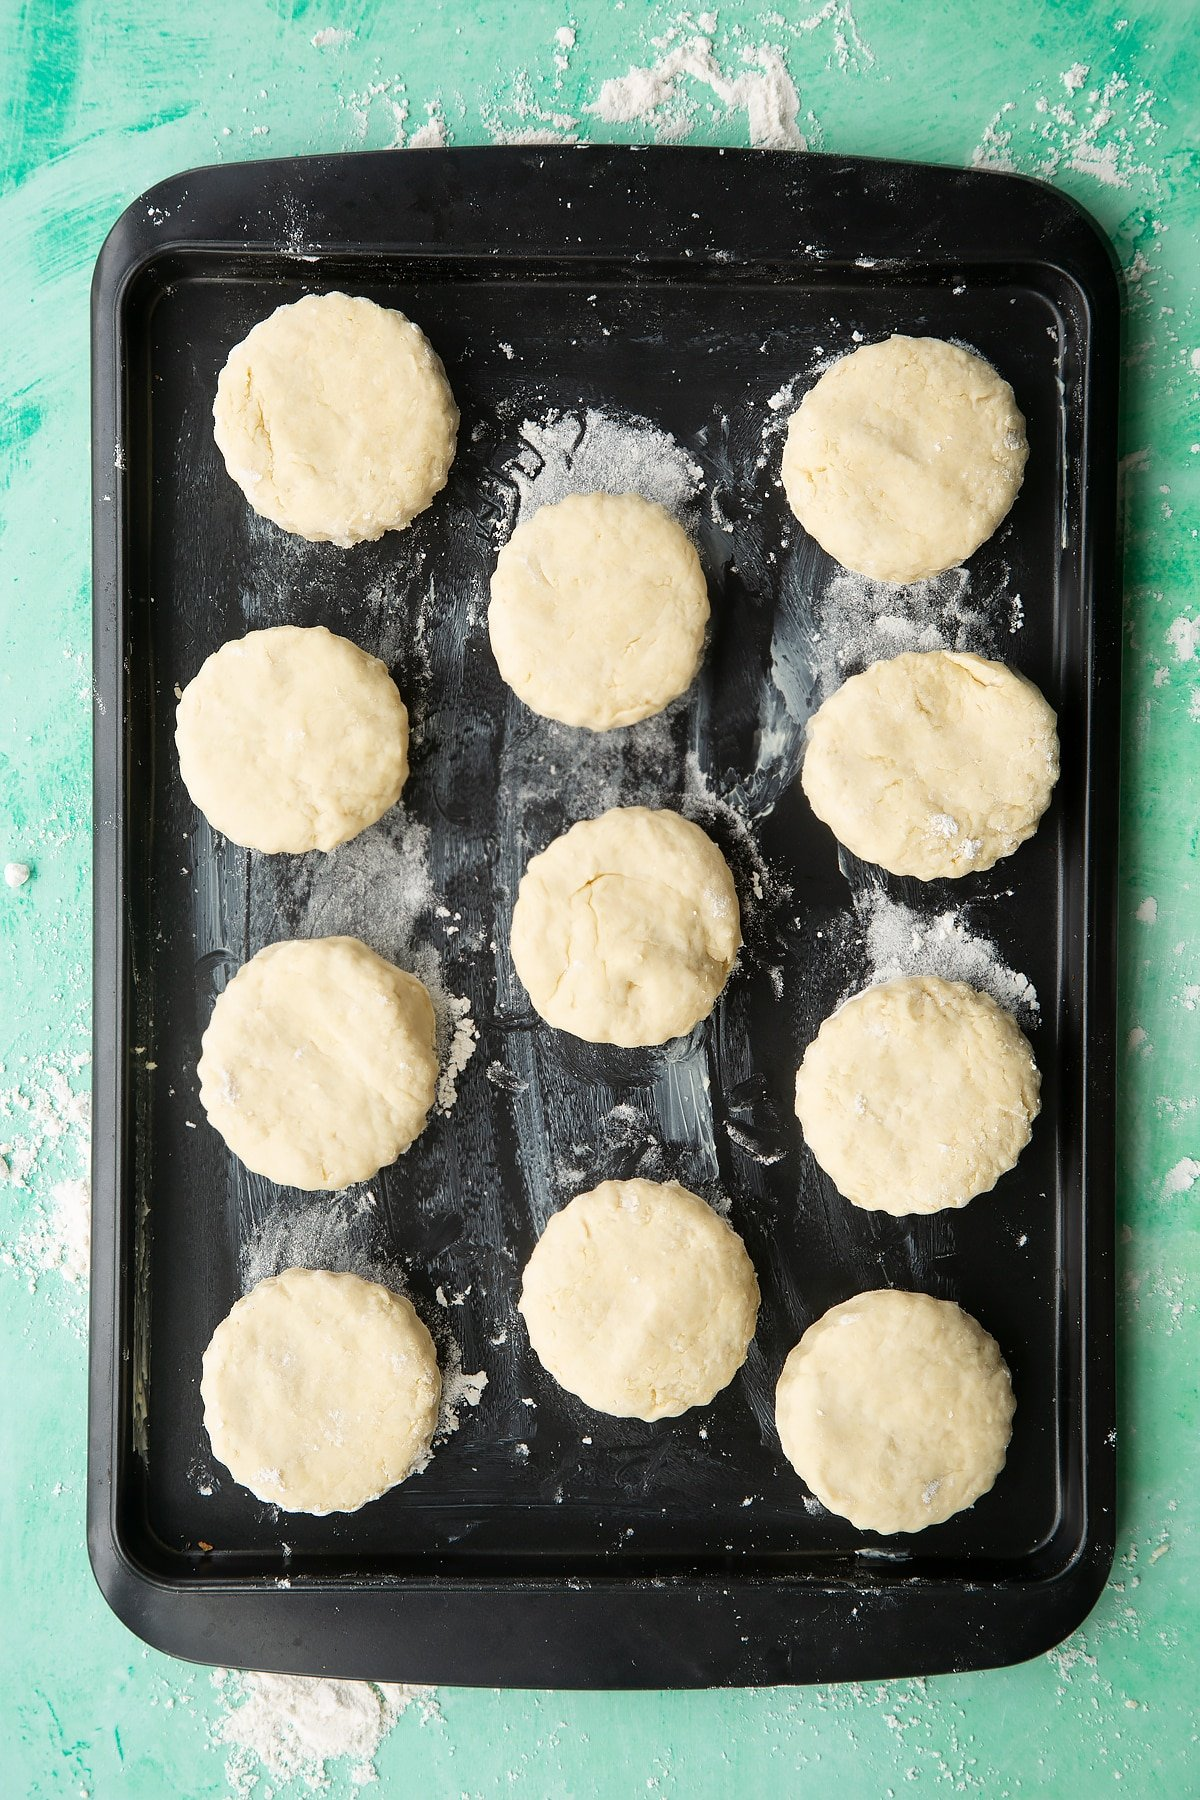 Dairy free scone rounds on a greased baking tray.